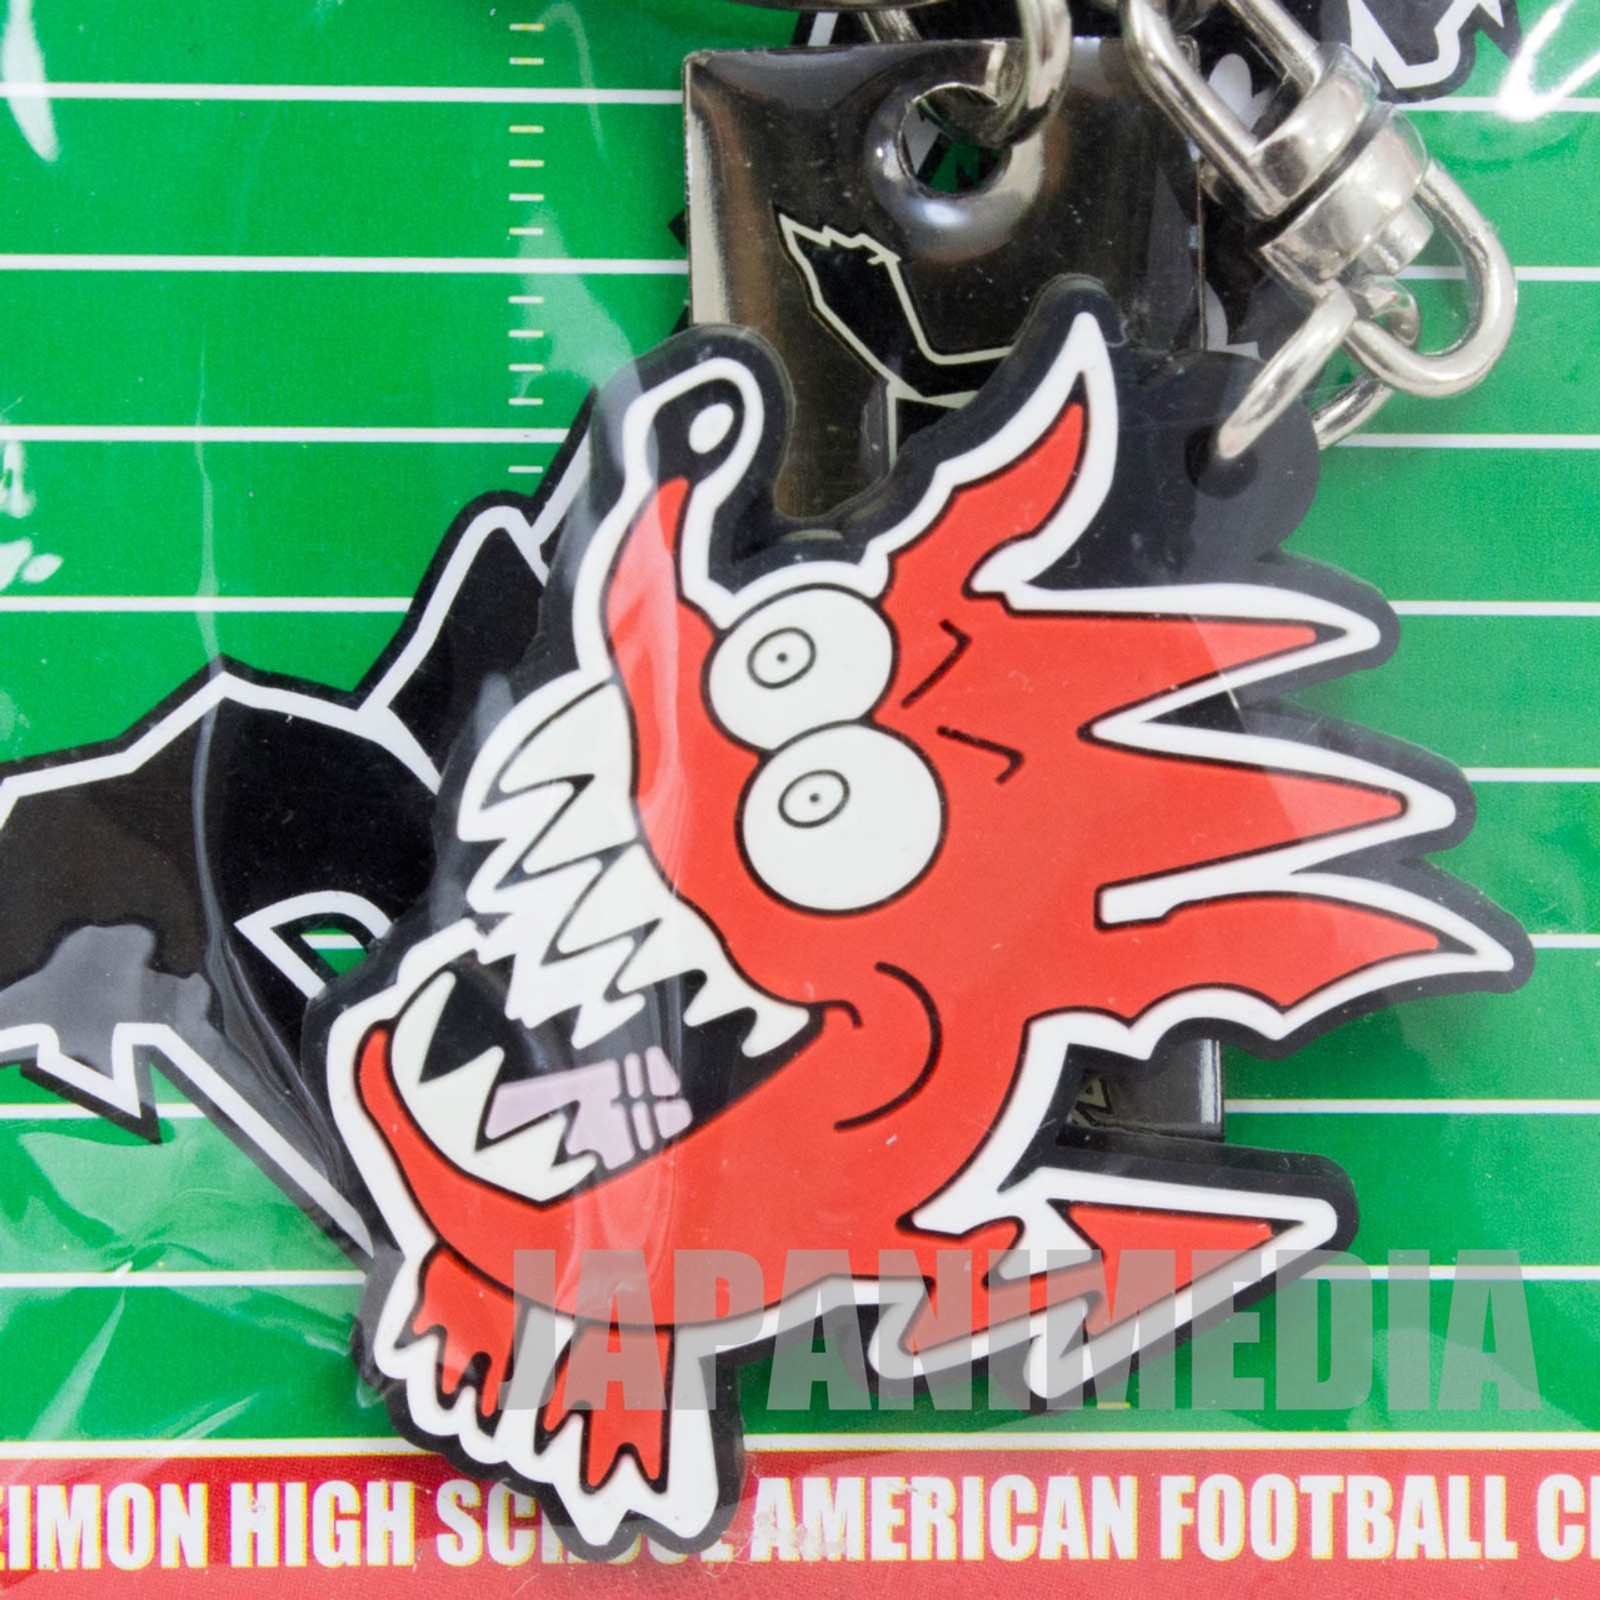 Eyeshield 21 DEVILBAT DEIMON DEVILBATS Rubber Key Chain JAPAN ANIME MANGA